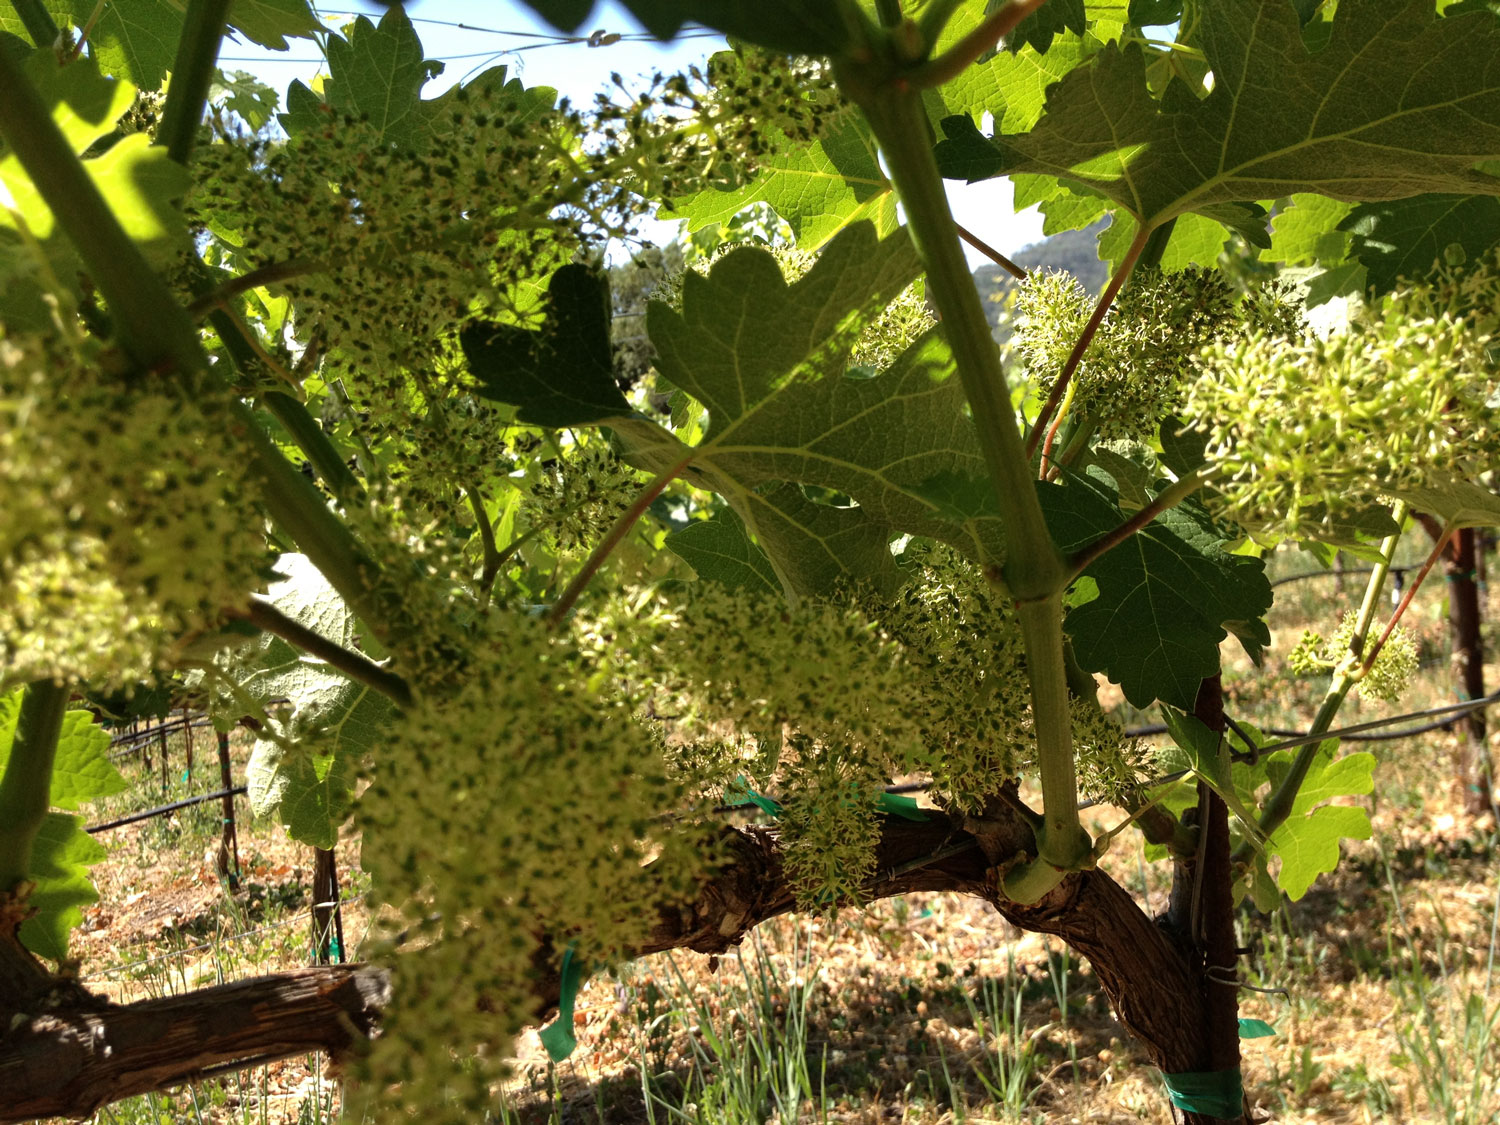 The Meanmouth Cabernet grapes in full blossom stage